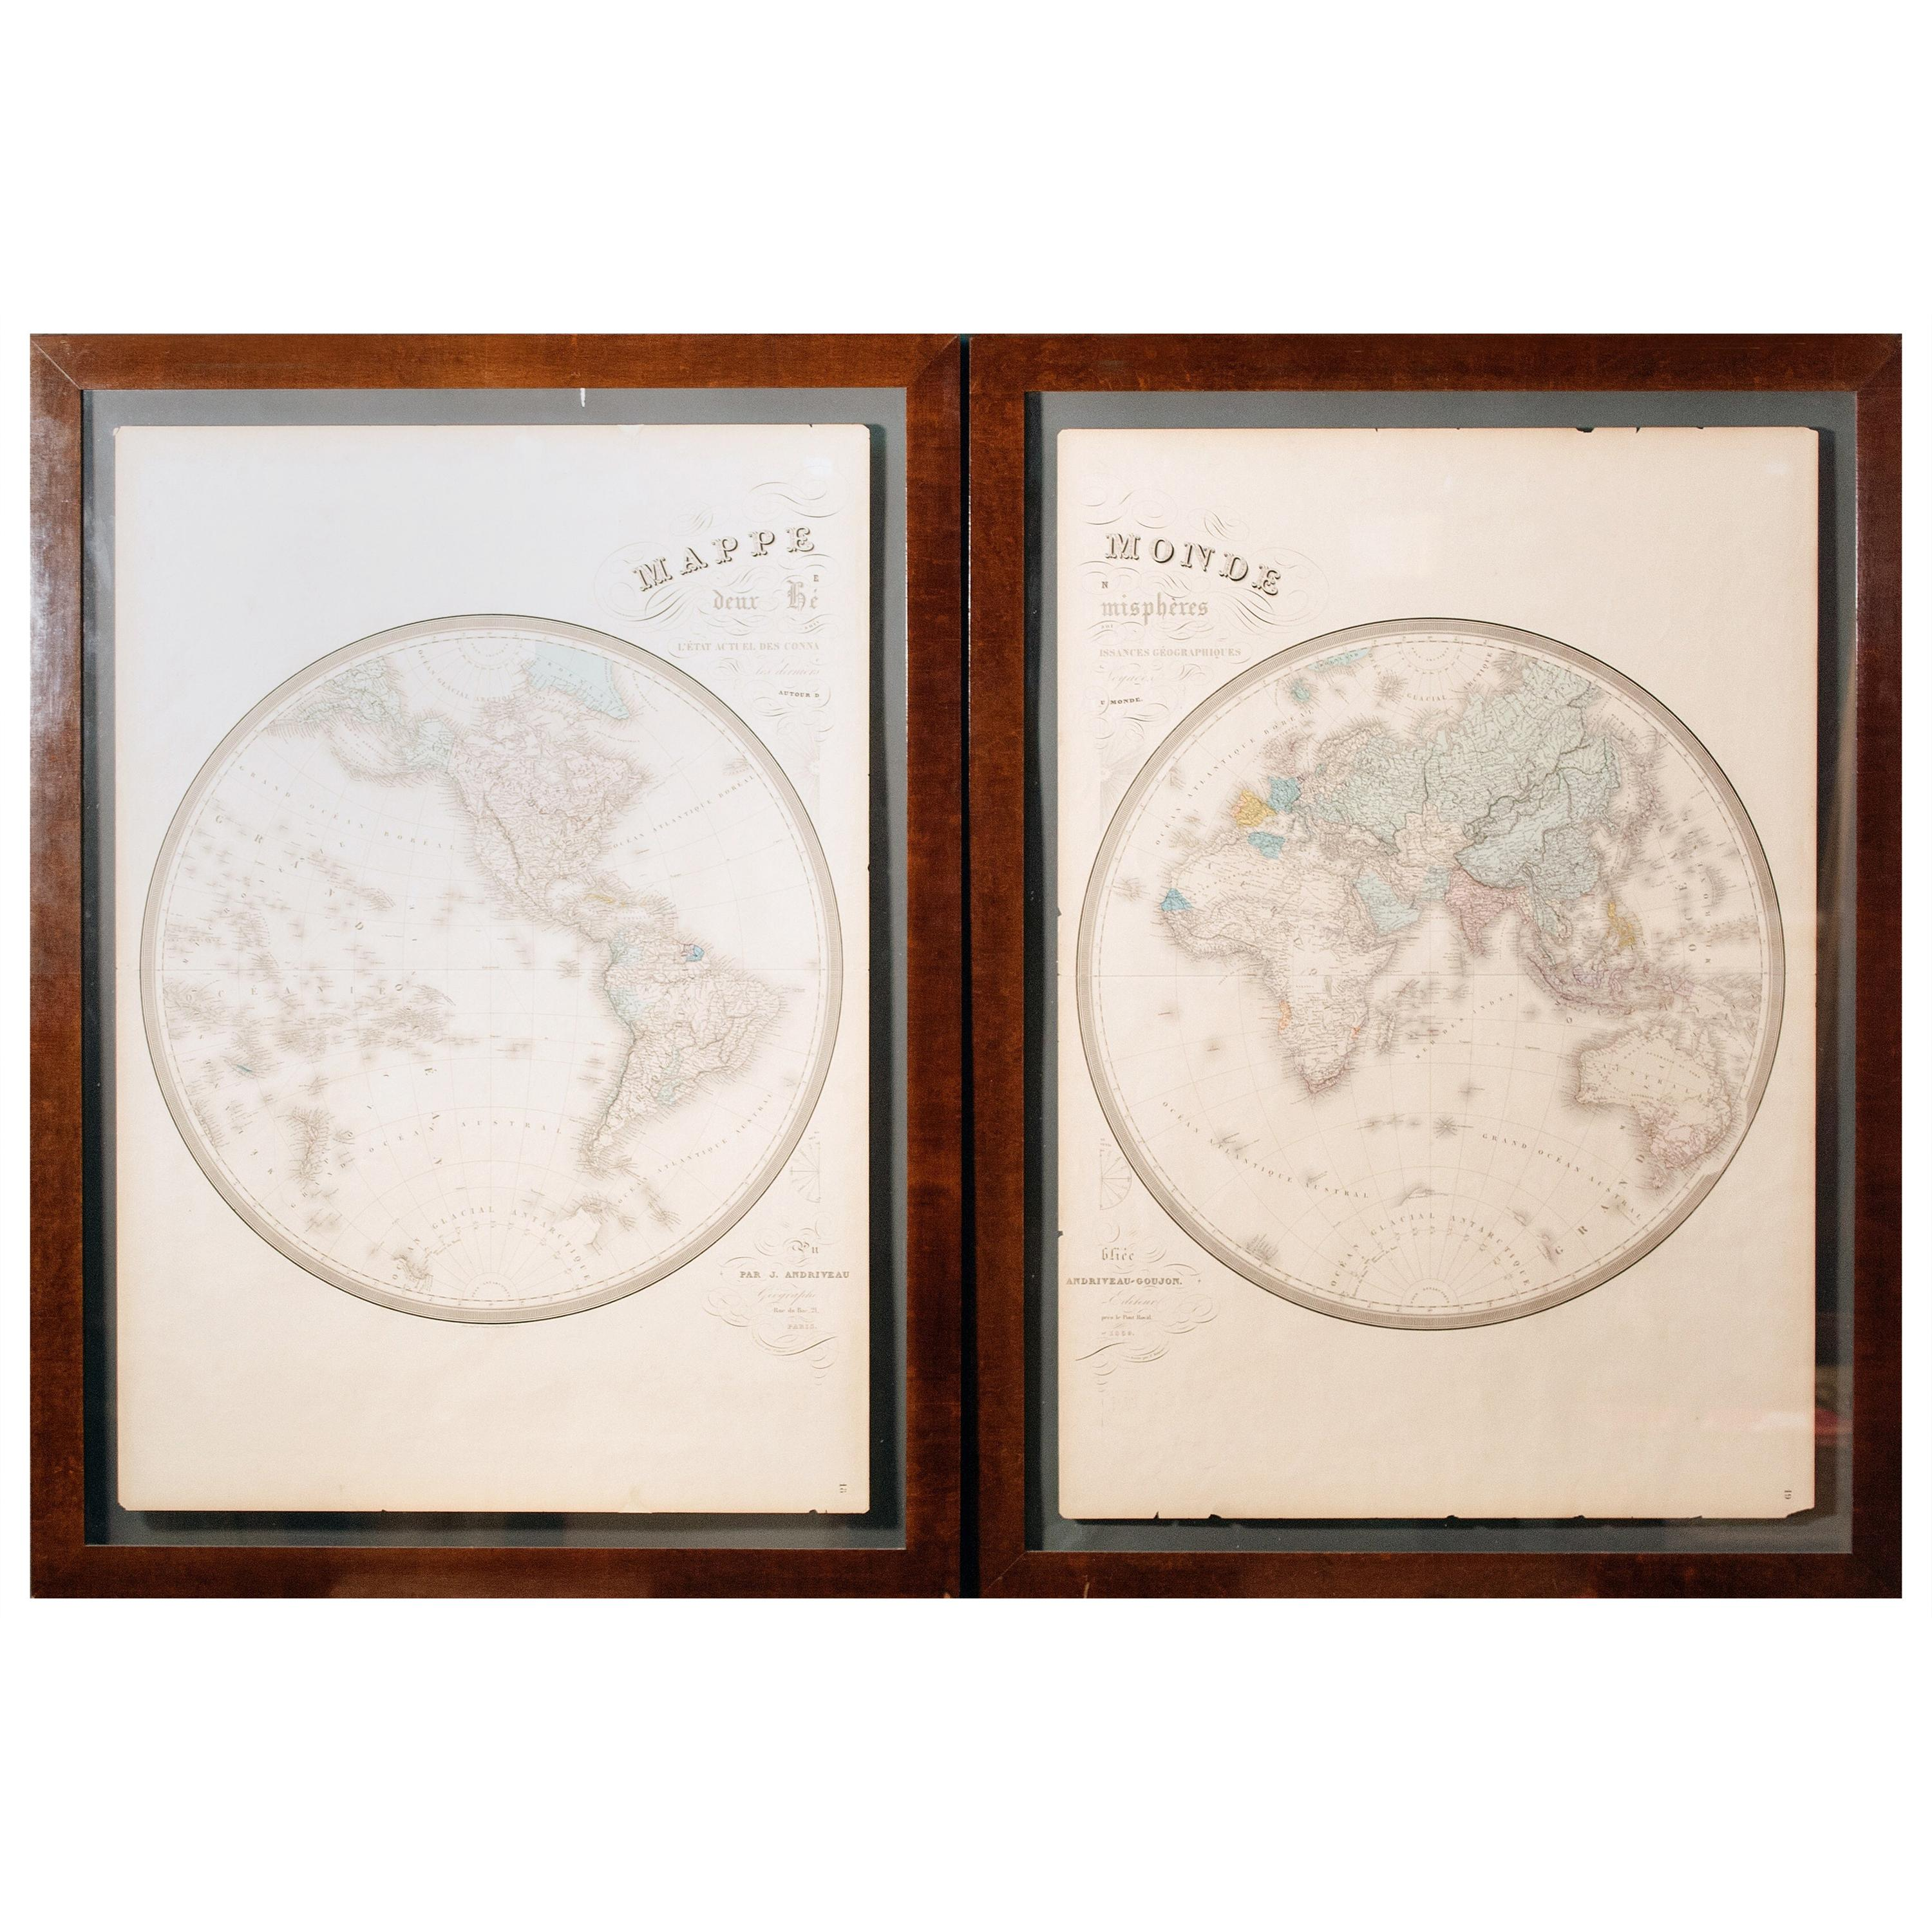 Pair of Hand Colore French Maps by Goujon, Paris